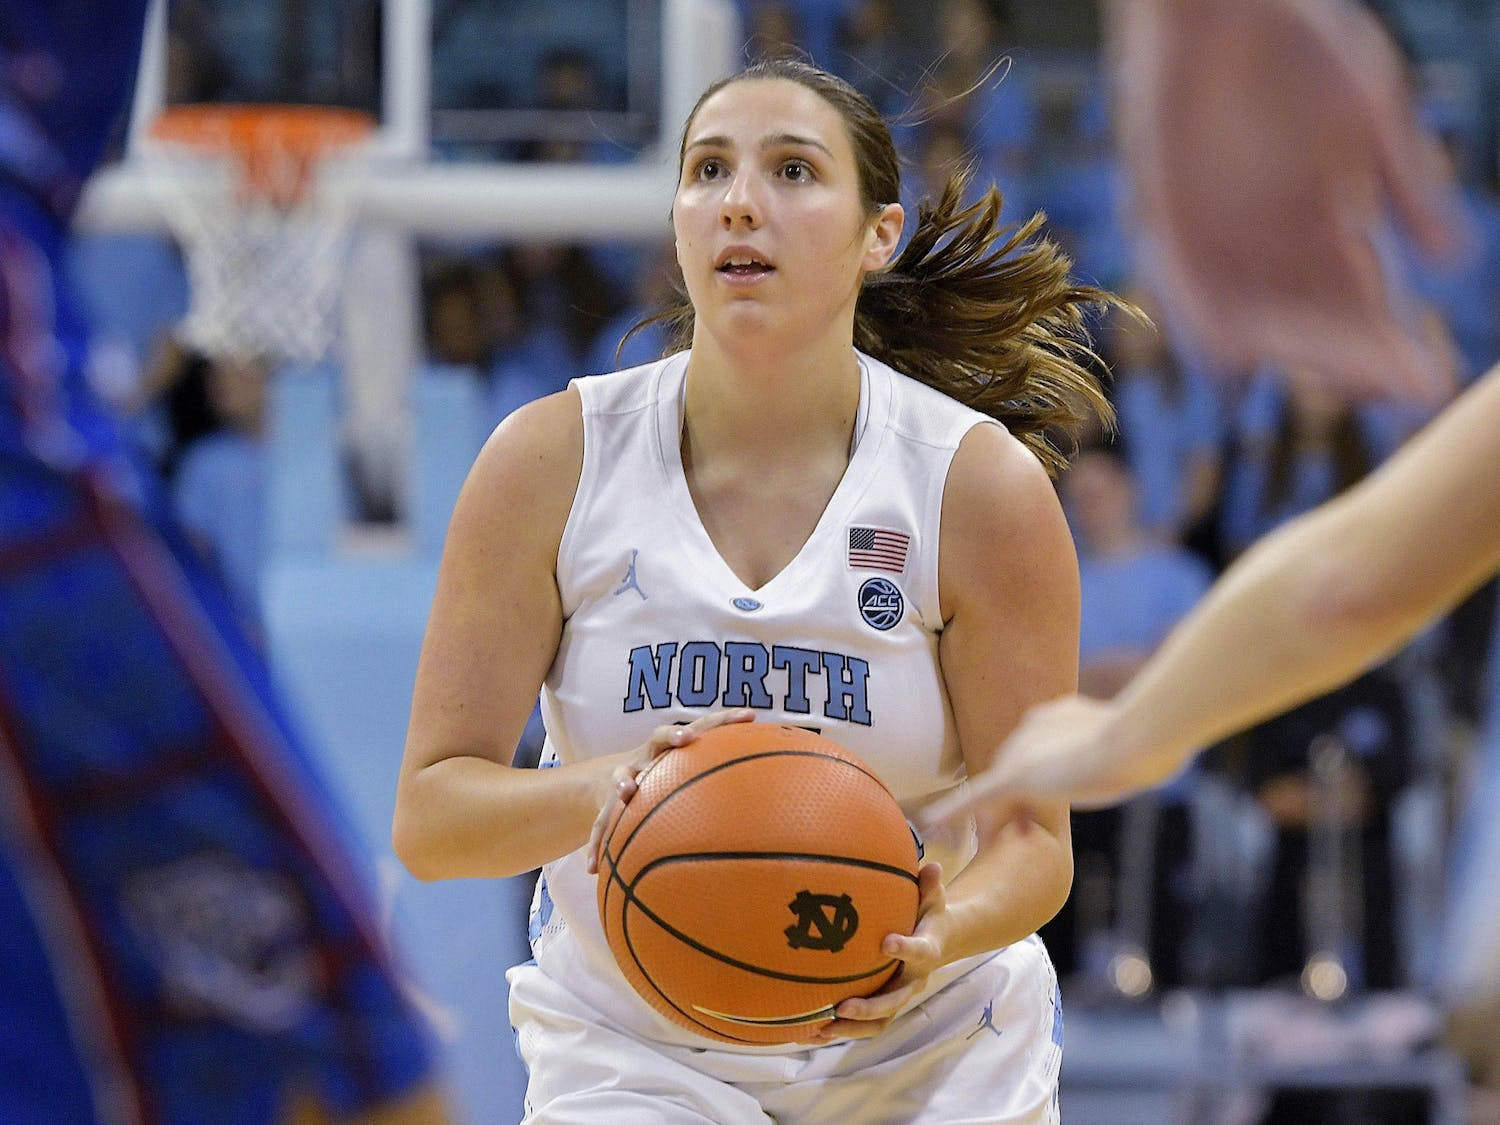 Then-sophomore Liz Roberts, a walk-on guard, attempts a shot in Carolina's 91-56 win over Presbyterian at Carmichael Arena on December 5, 2017. Now a graduate assistant with the team, Roberts is hoping to use her experience at UNC as a springboard into a career in sports. Photo courtesy of Jeff Camarati/UNC Athletics